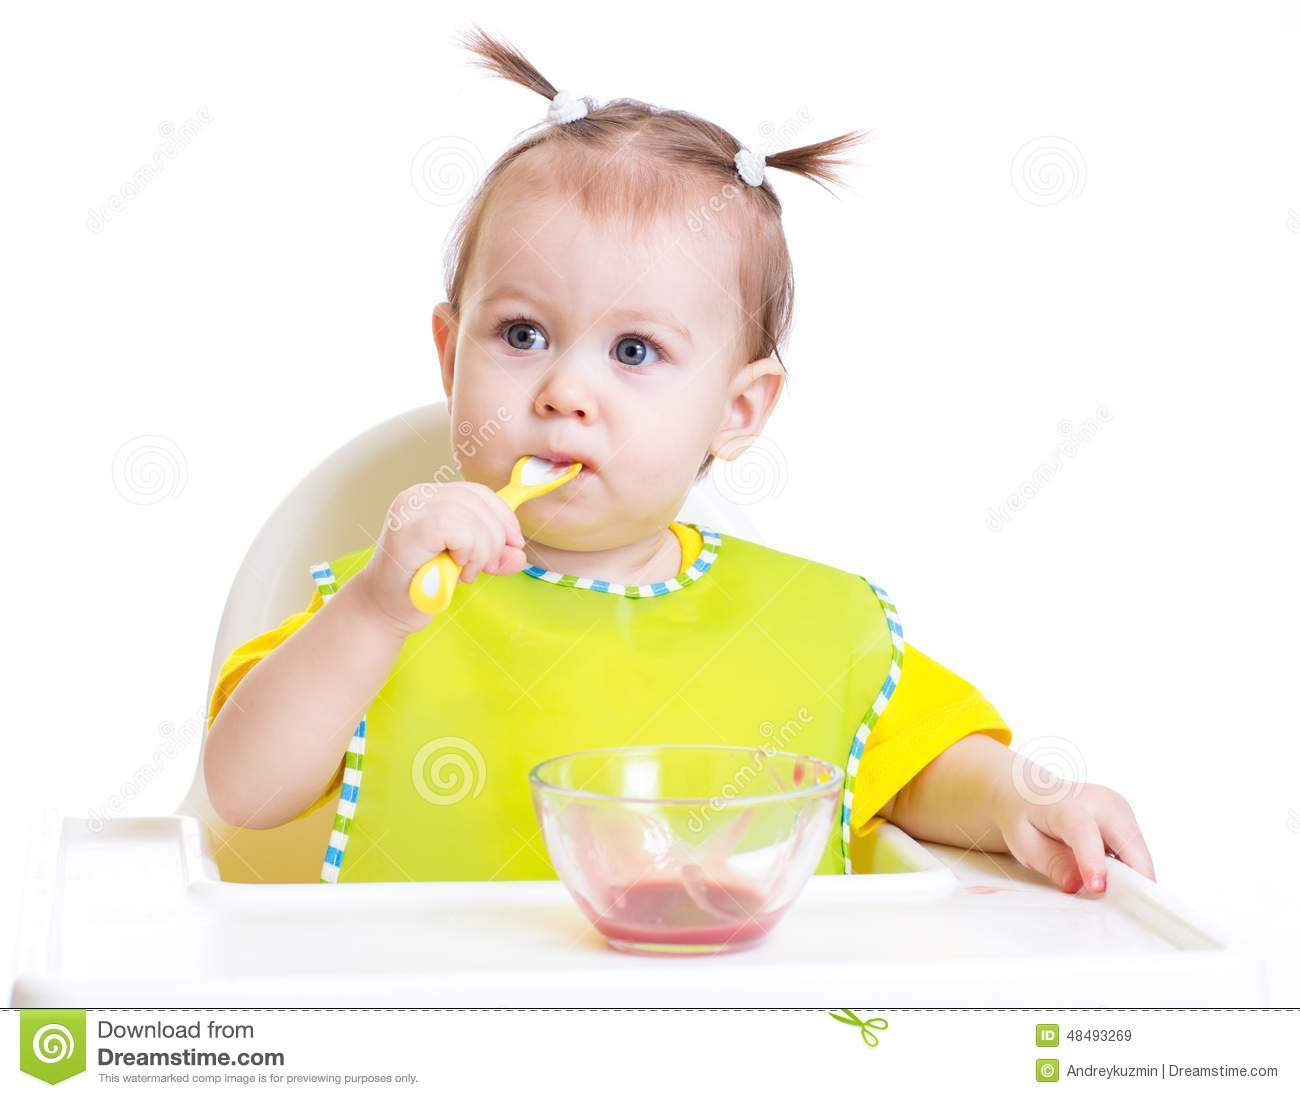 Baby eating with spoon sitting at table